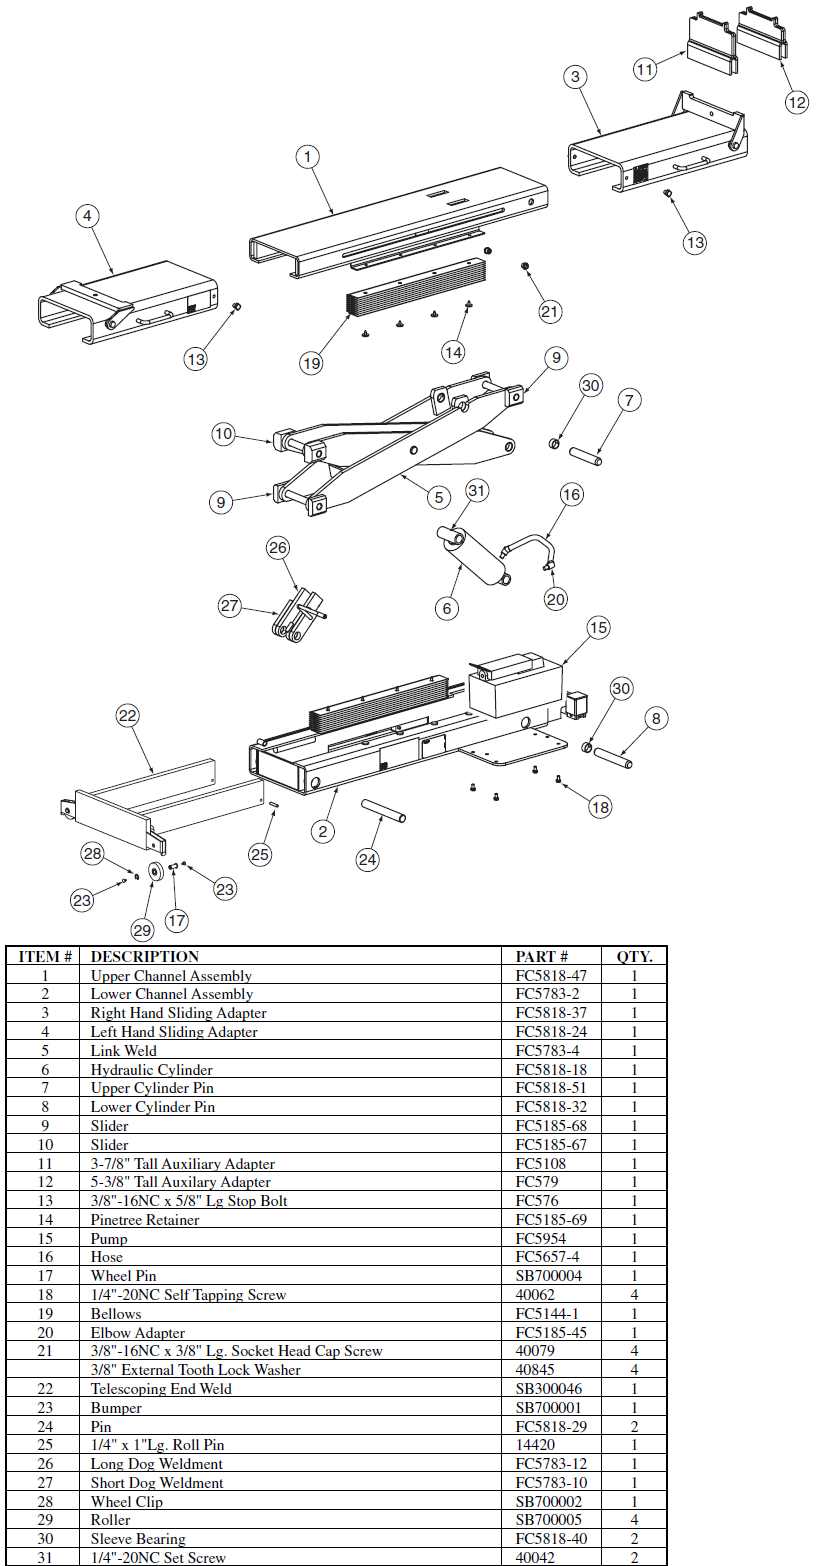 Rotary Lift Replacement Parts : Rotary rj parts diagram